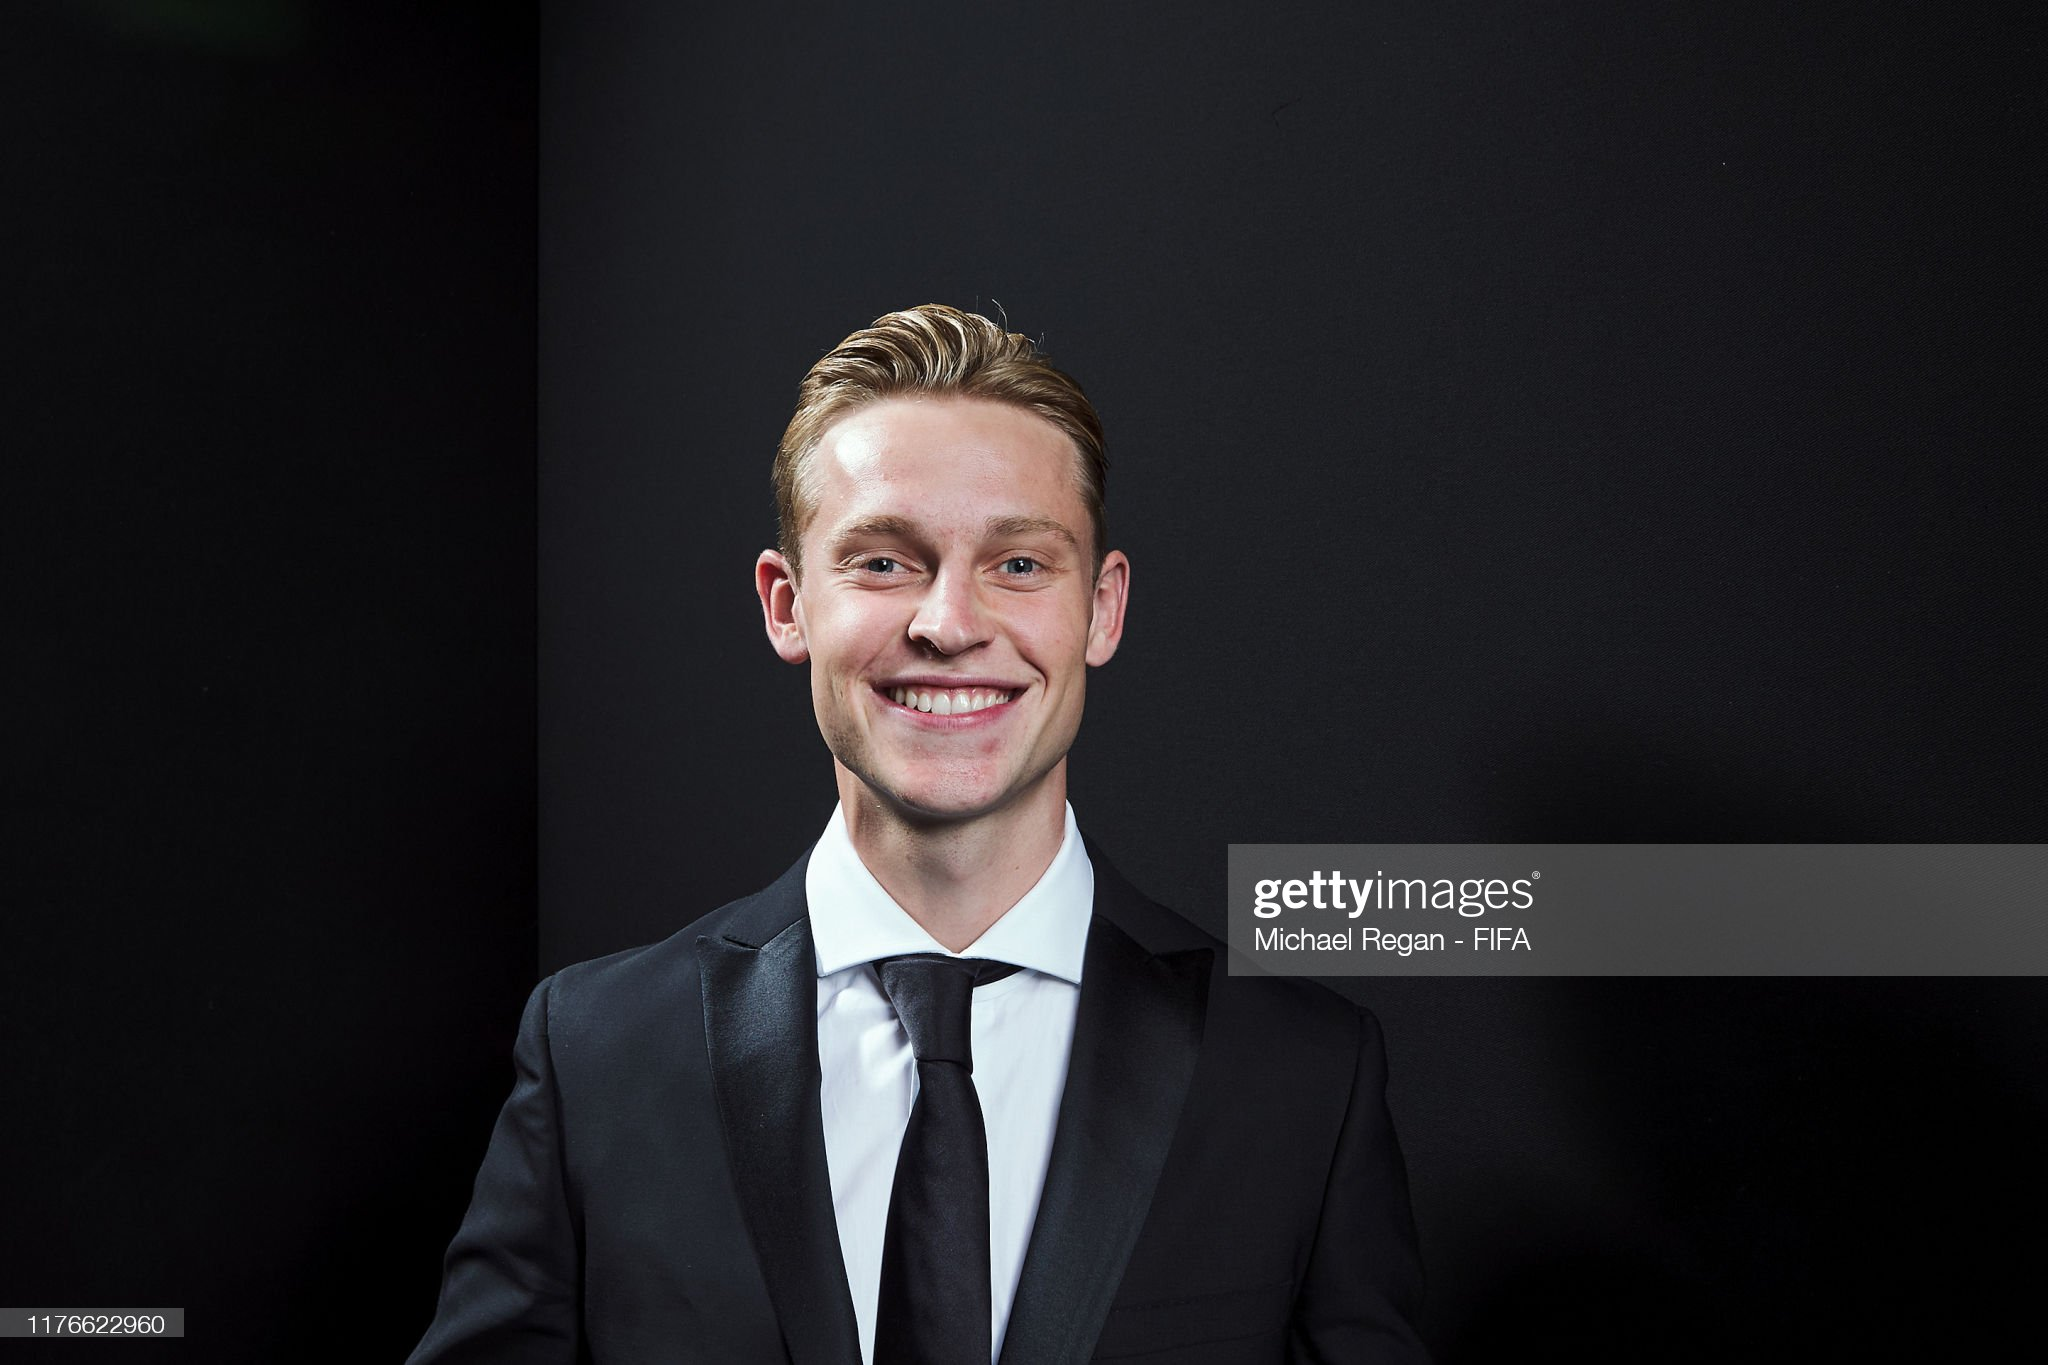 The Best FIFA Football Awards 2019 Fifpro-mens-world11-award-frenkie-de-jong-of-barcelona-and-netherland-picture-id1176622960?s=2048x2048